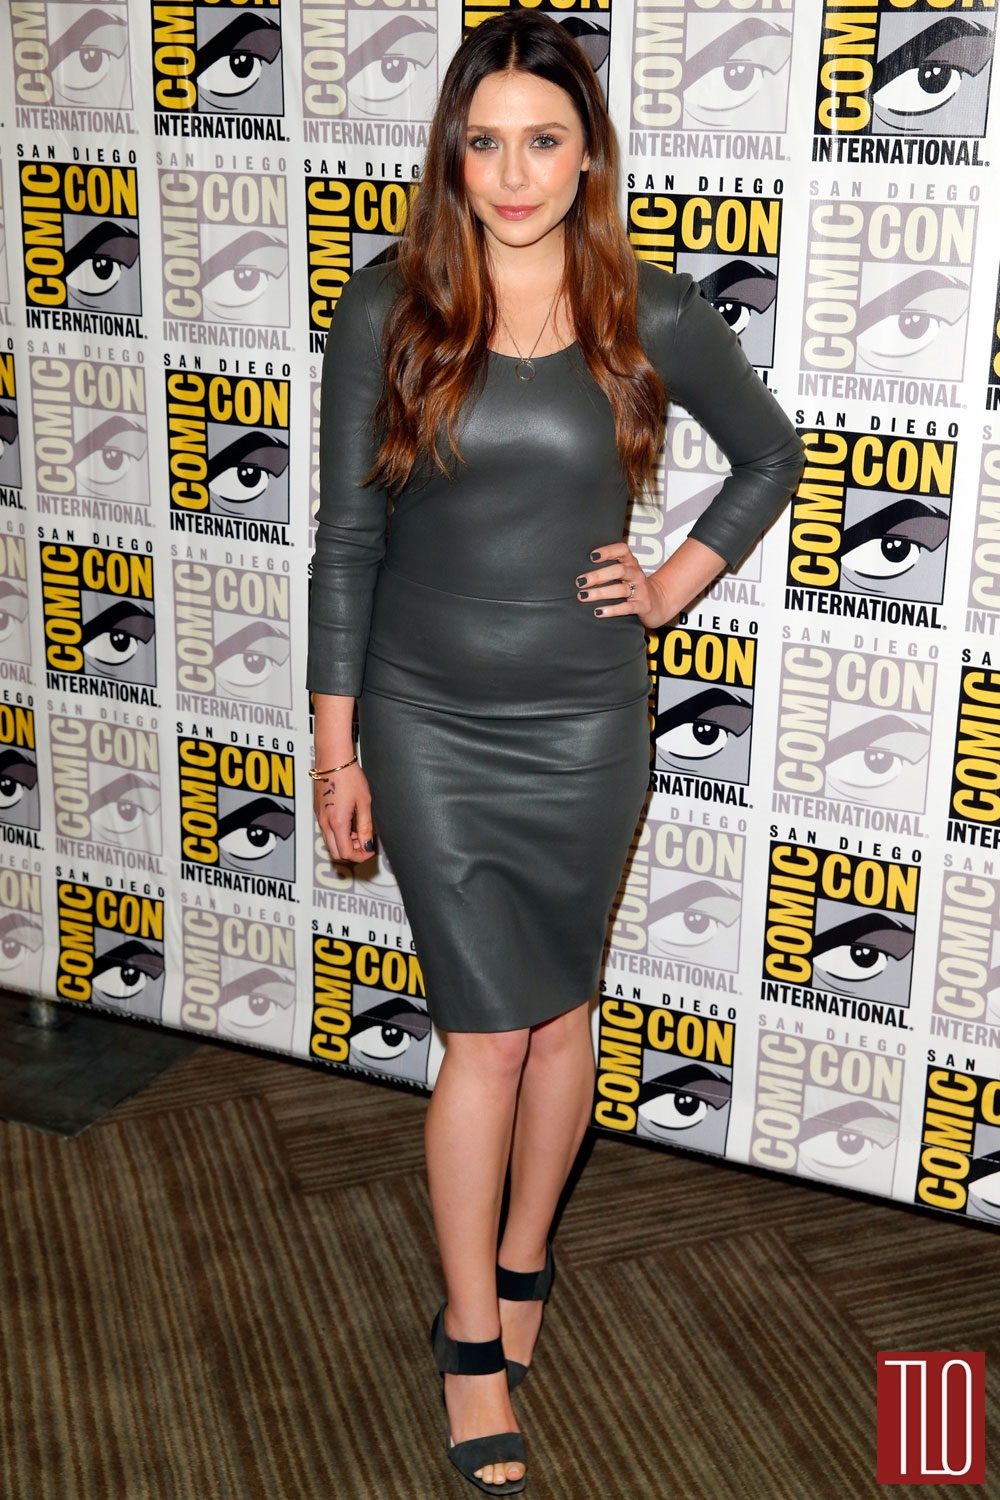 Elizabeth-Olsen-Comic-Con-2014-Red-Carpet--The-Row-Prada-Tom-Lorenzo-Site-TLO (1)